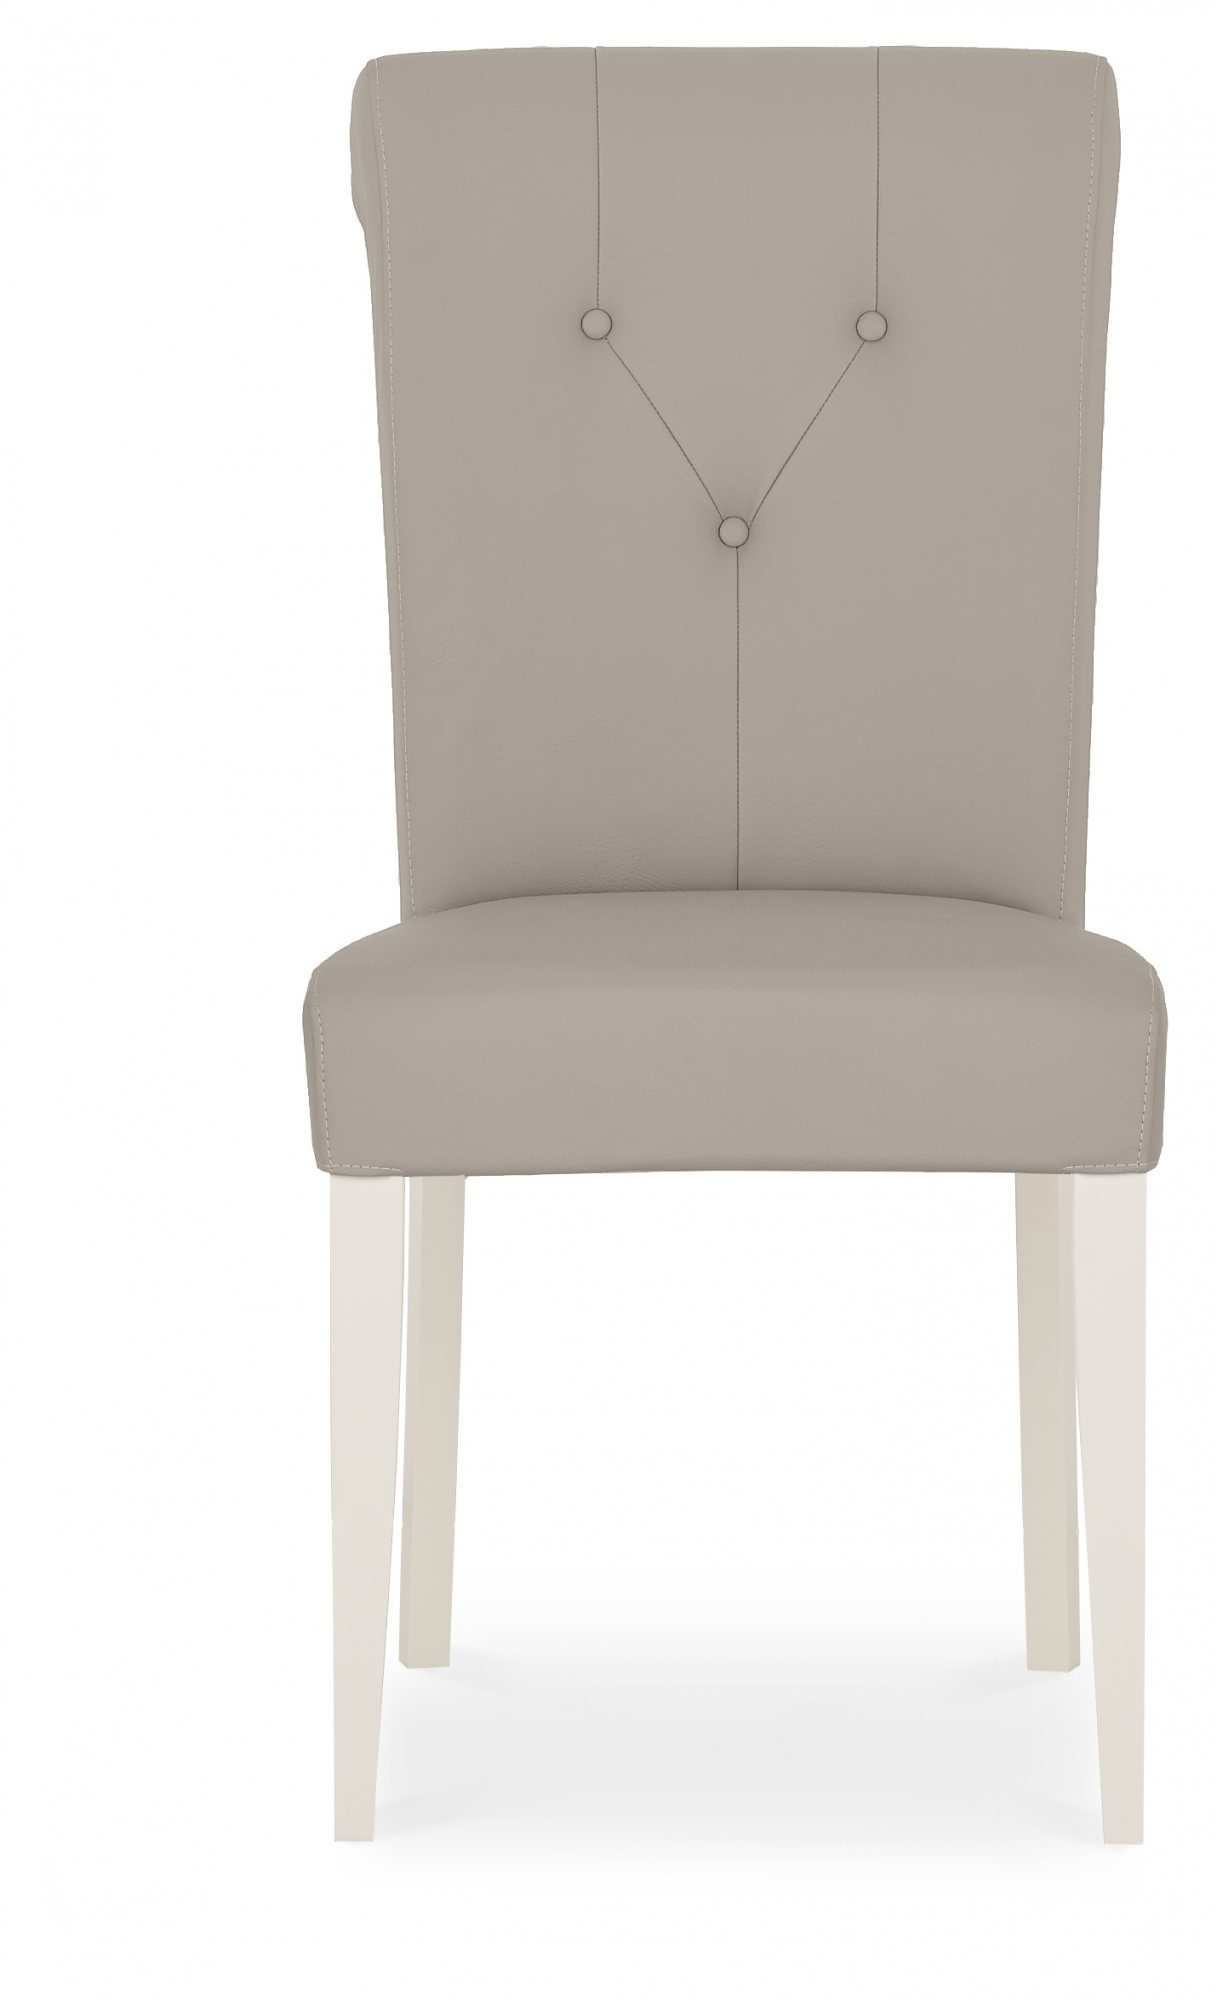 MONICA GREY UPHOLSTERED DINING CHAIR - FRONT DETAIL